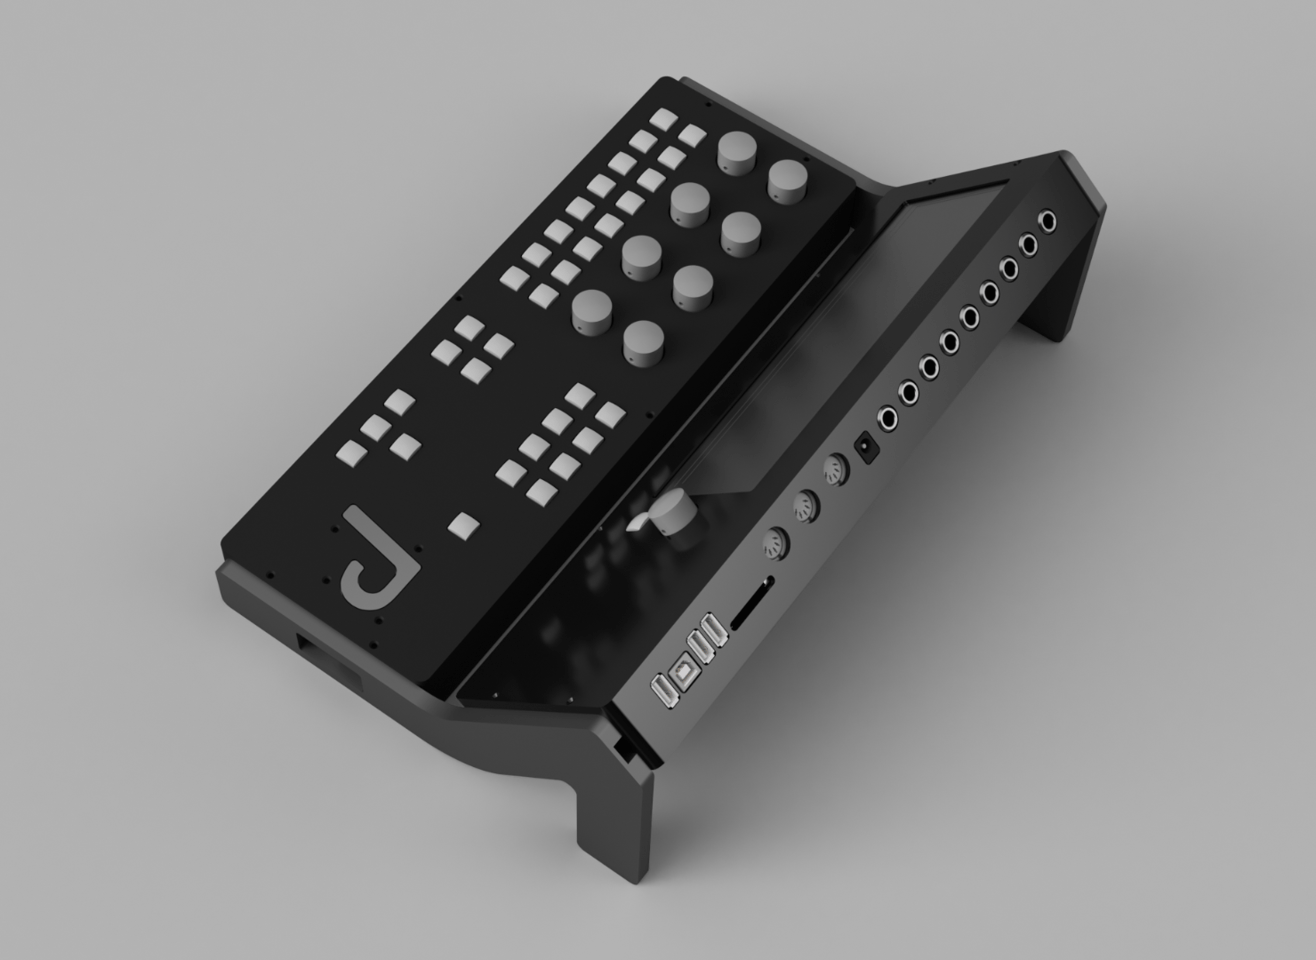 The Synthor System 8's Engine module has MIDI and USB ports, and an SD slot